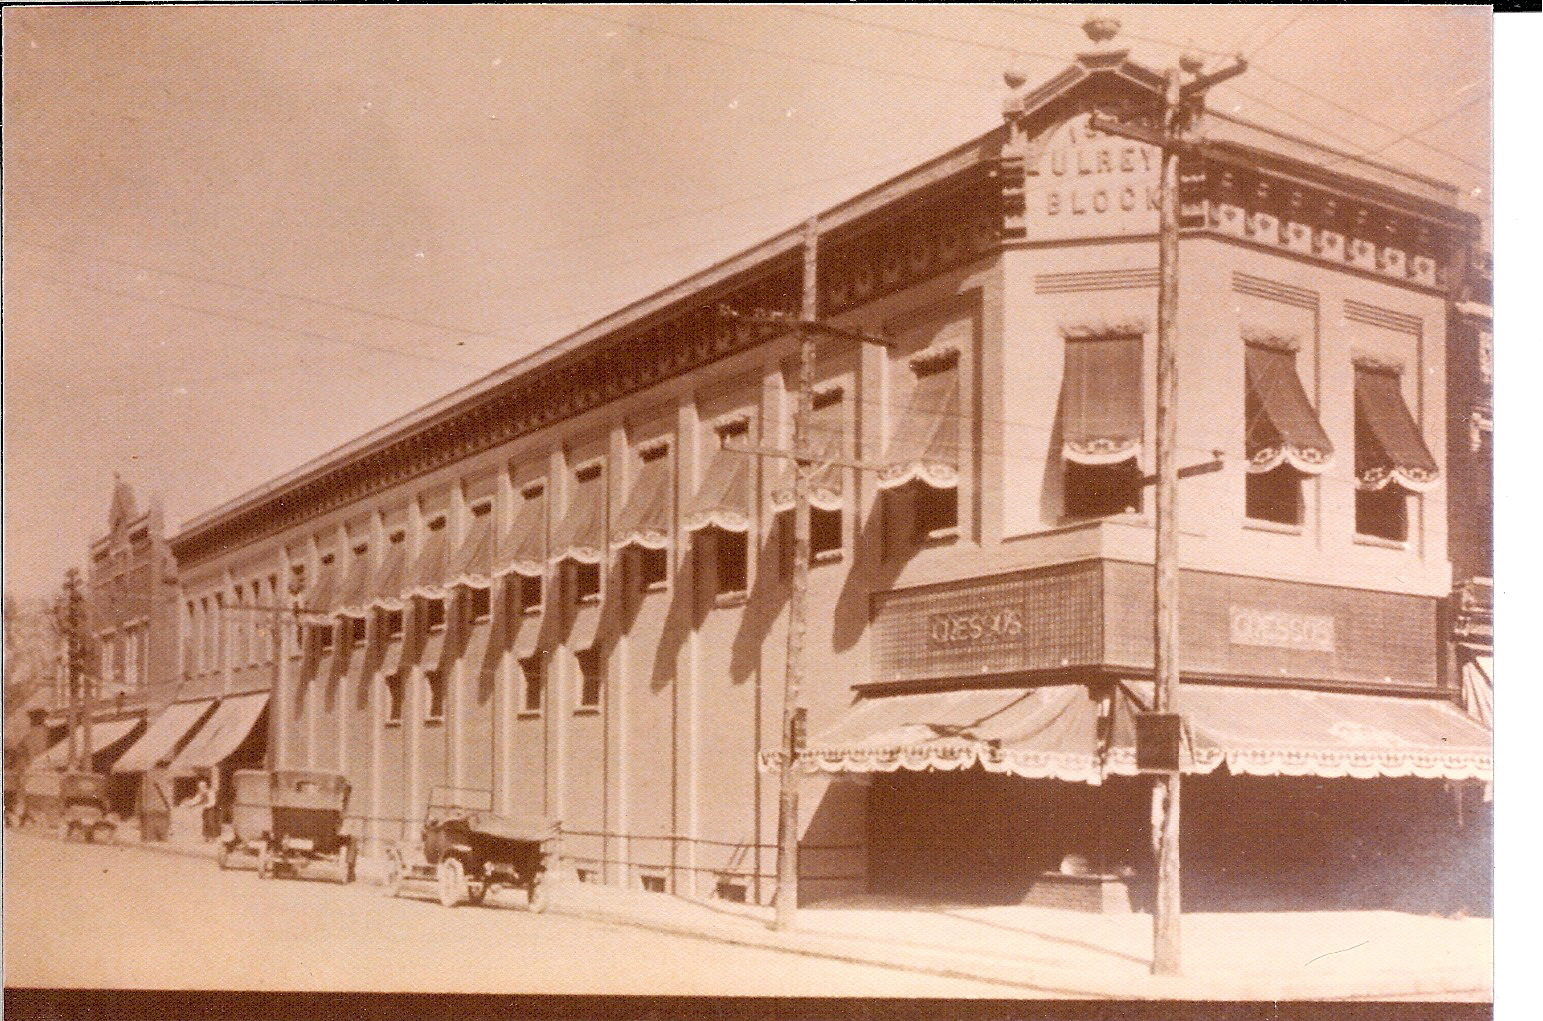 Gresso's Department Store, North Manchester